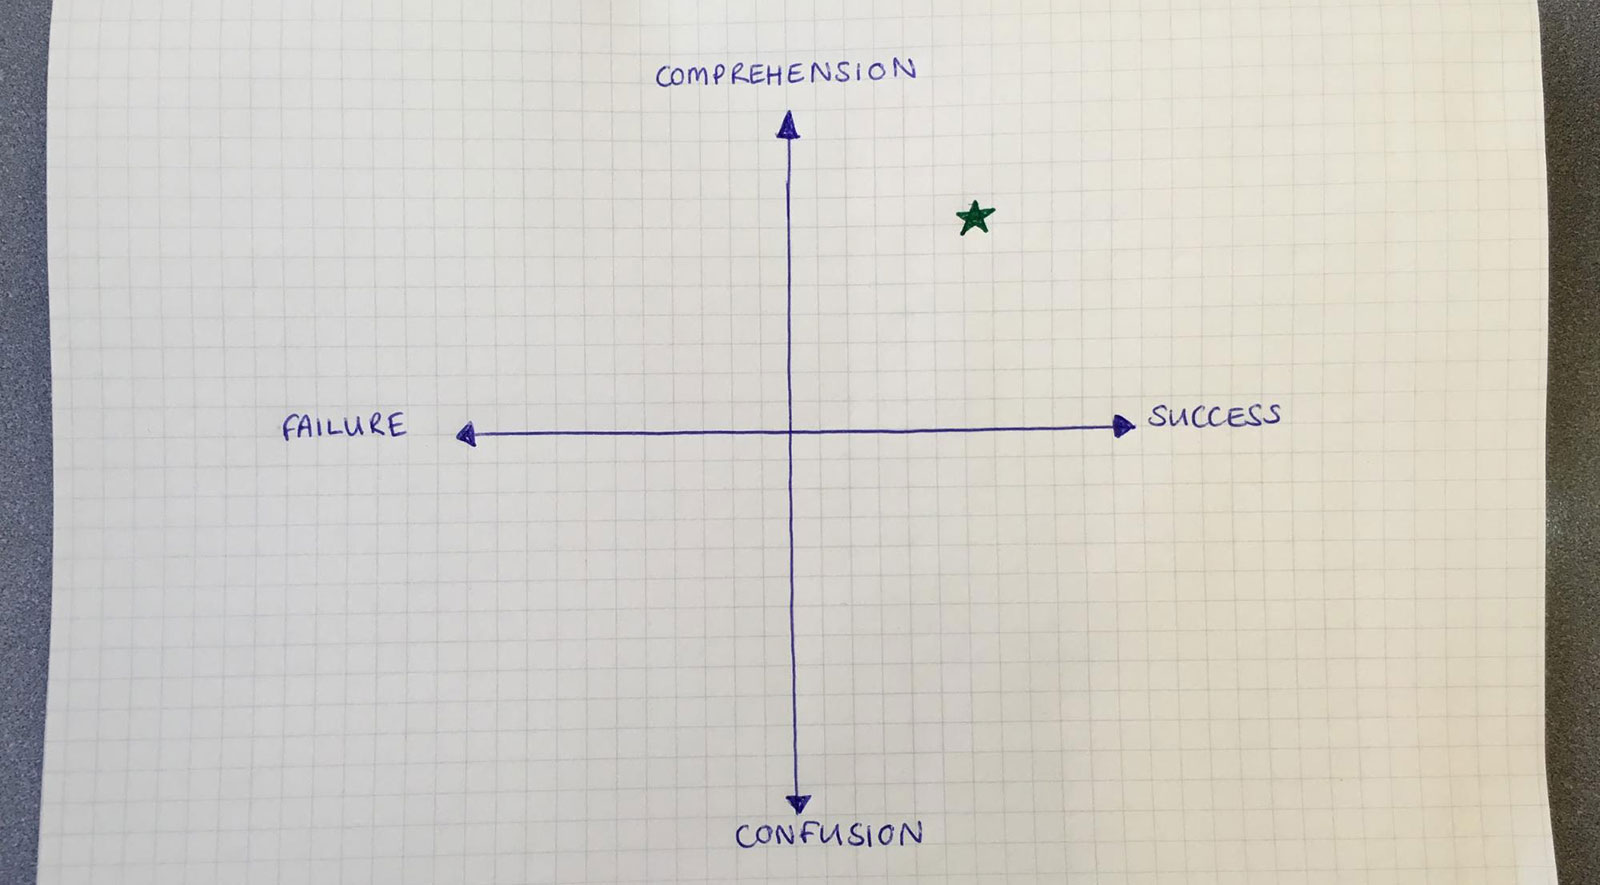 A graph with comprehension and confusion at the top and bottom of the y-axis and failure and success on the left and right of the x axis. The desired spot for content is in the upper right quadrant between comprehension and success.